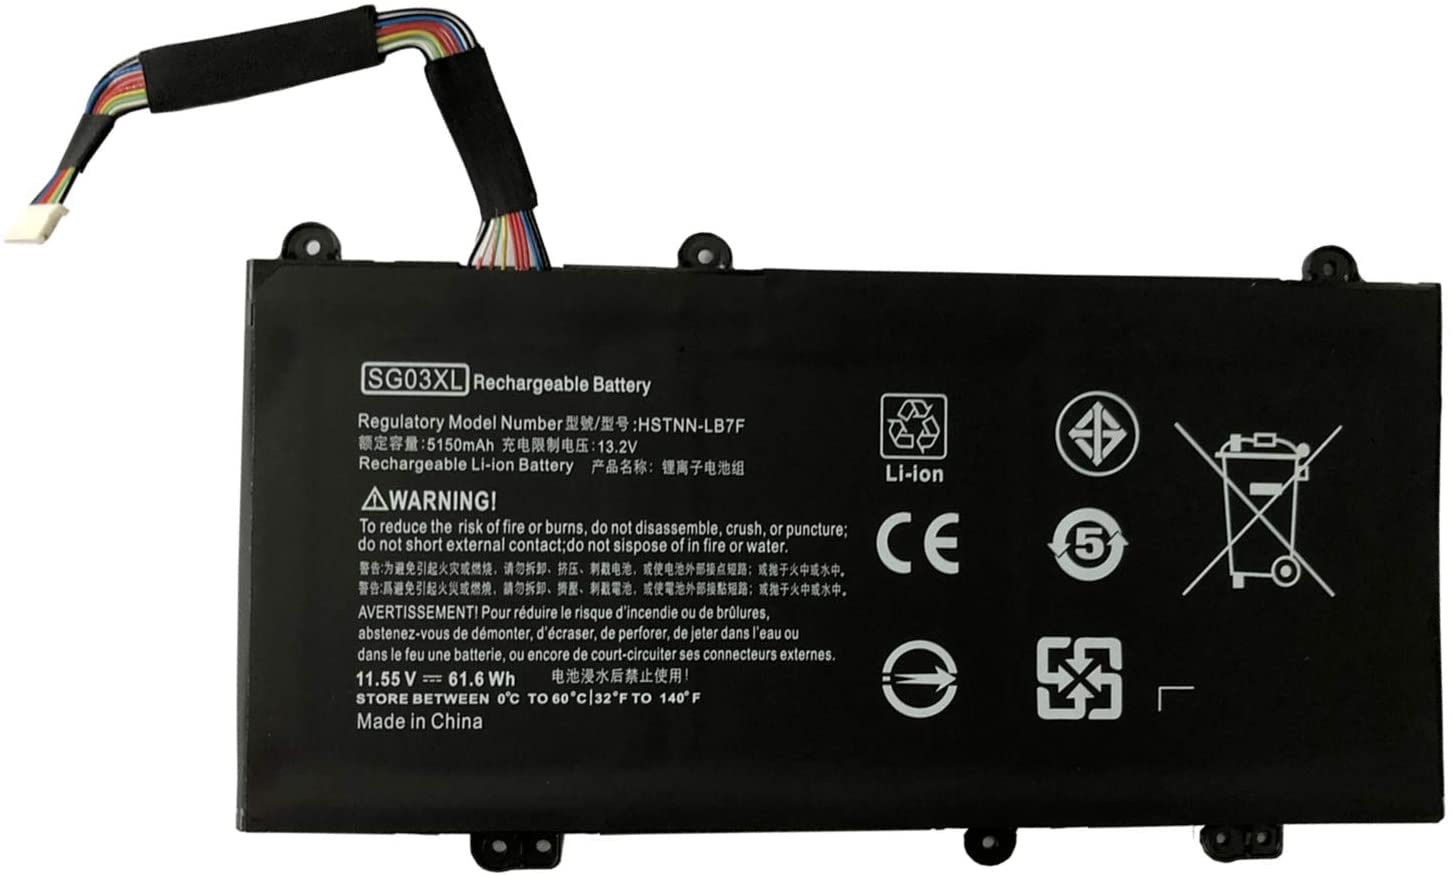 Civhomy Replacement Battery for HP Envy M7-U M7-U009DX M7-U109DX W2K88UA SGO3XL 849314-856 HSTNN-LB7F SG03041XL 849314-850 SG03061XL 849315-850